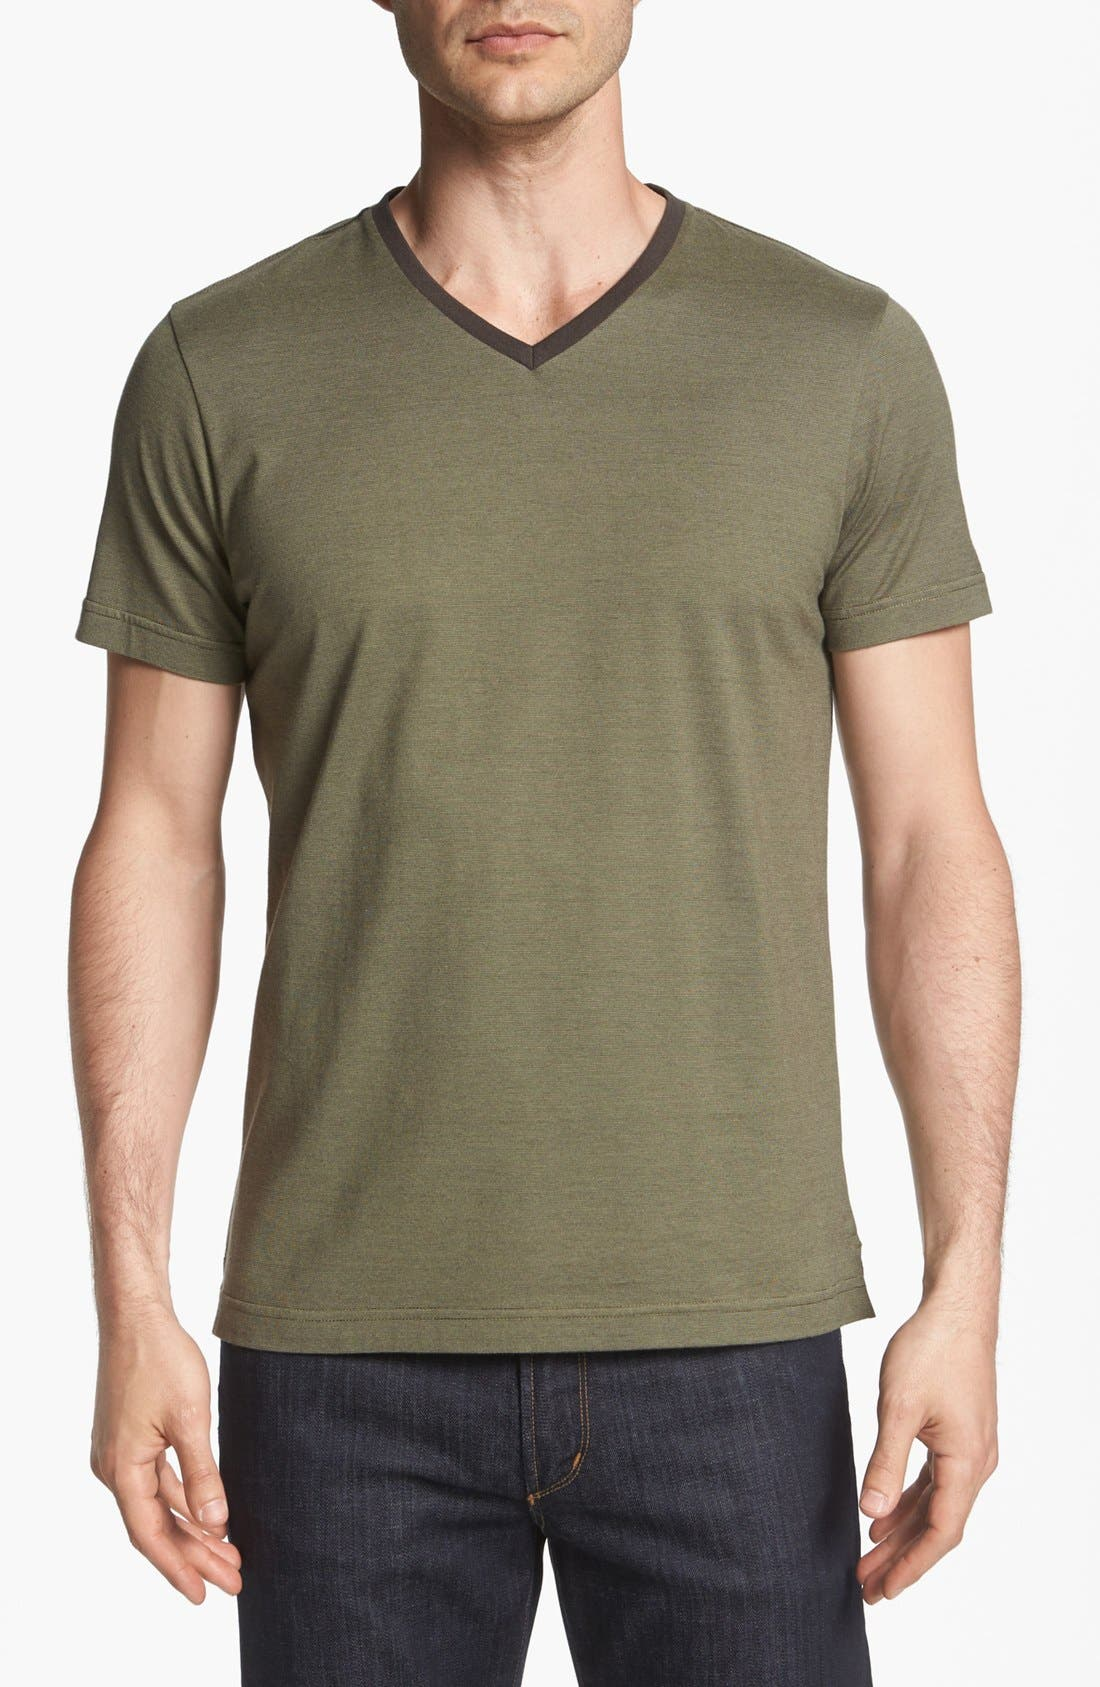 Alternate Image 1 Selected - Robert Barakett 'Connor' V-Neck T-shirt